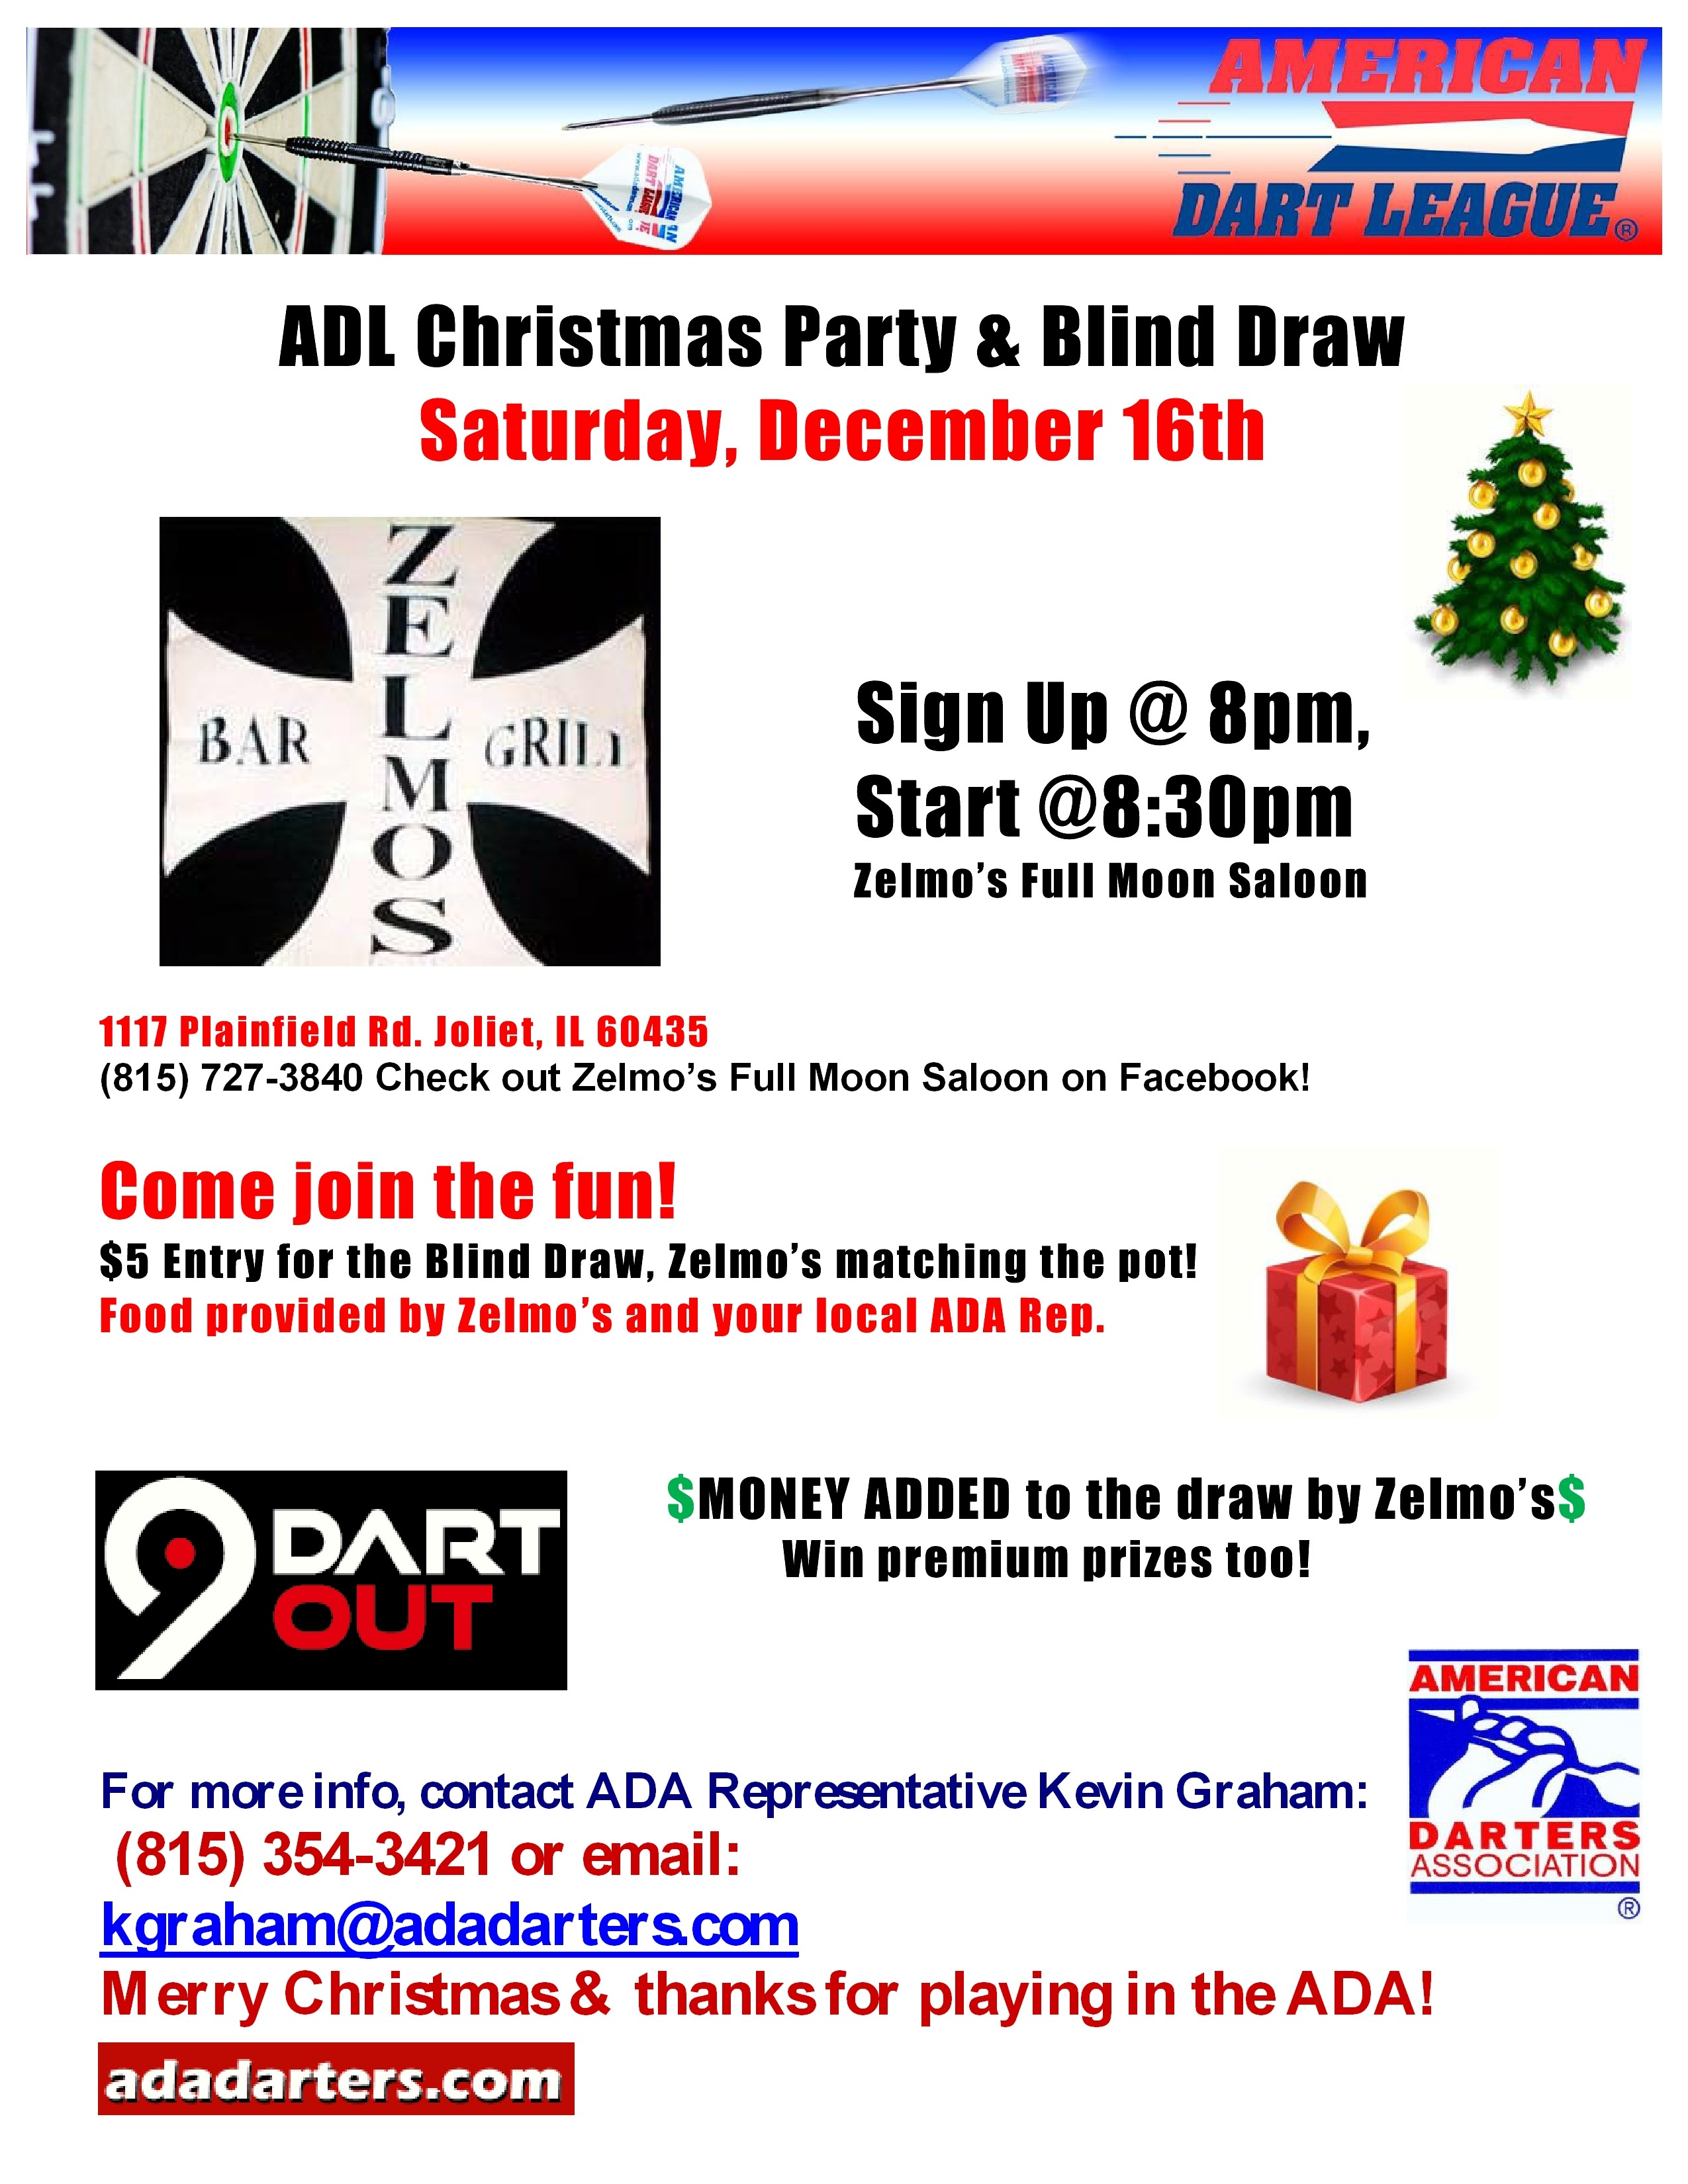 ADL Christmas Party & Blind Draw ADA Area 607 ADA The